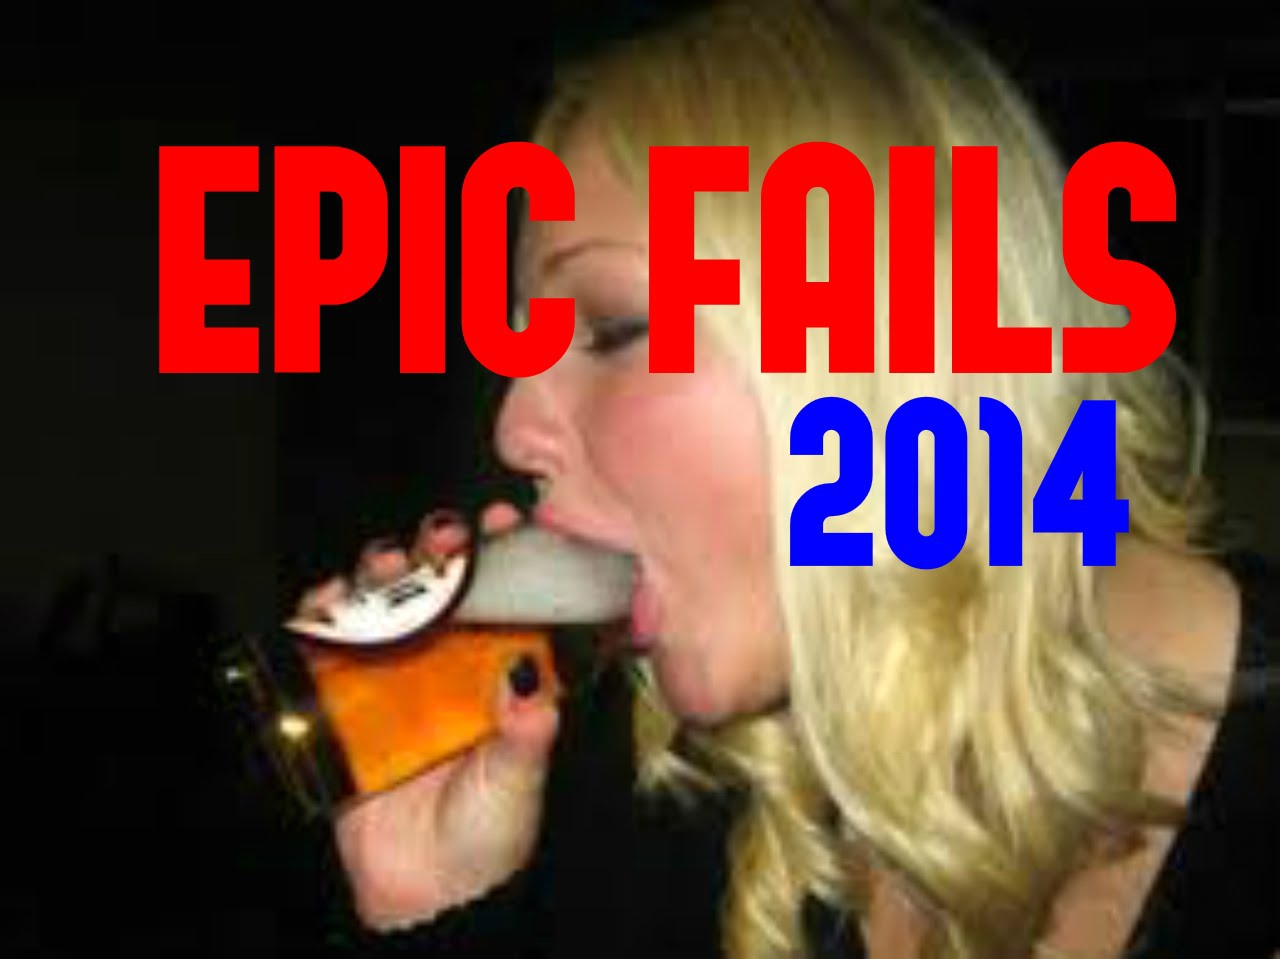 BEST EPIC FAIL /Win Compilation/ Fails July 2014 #25